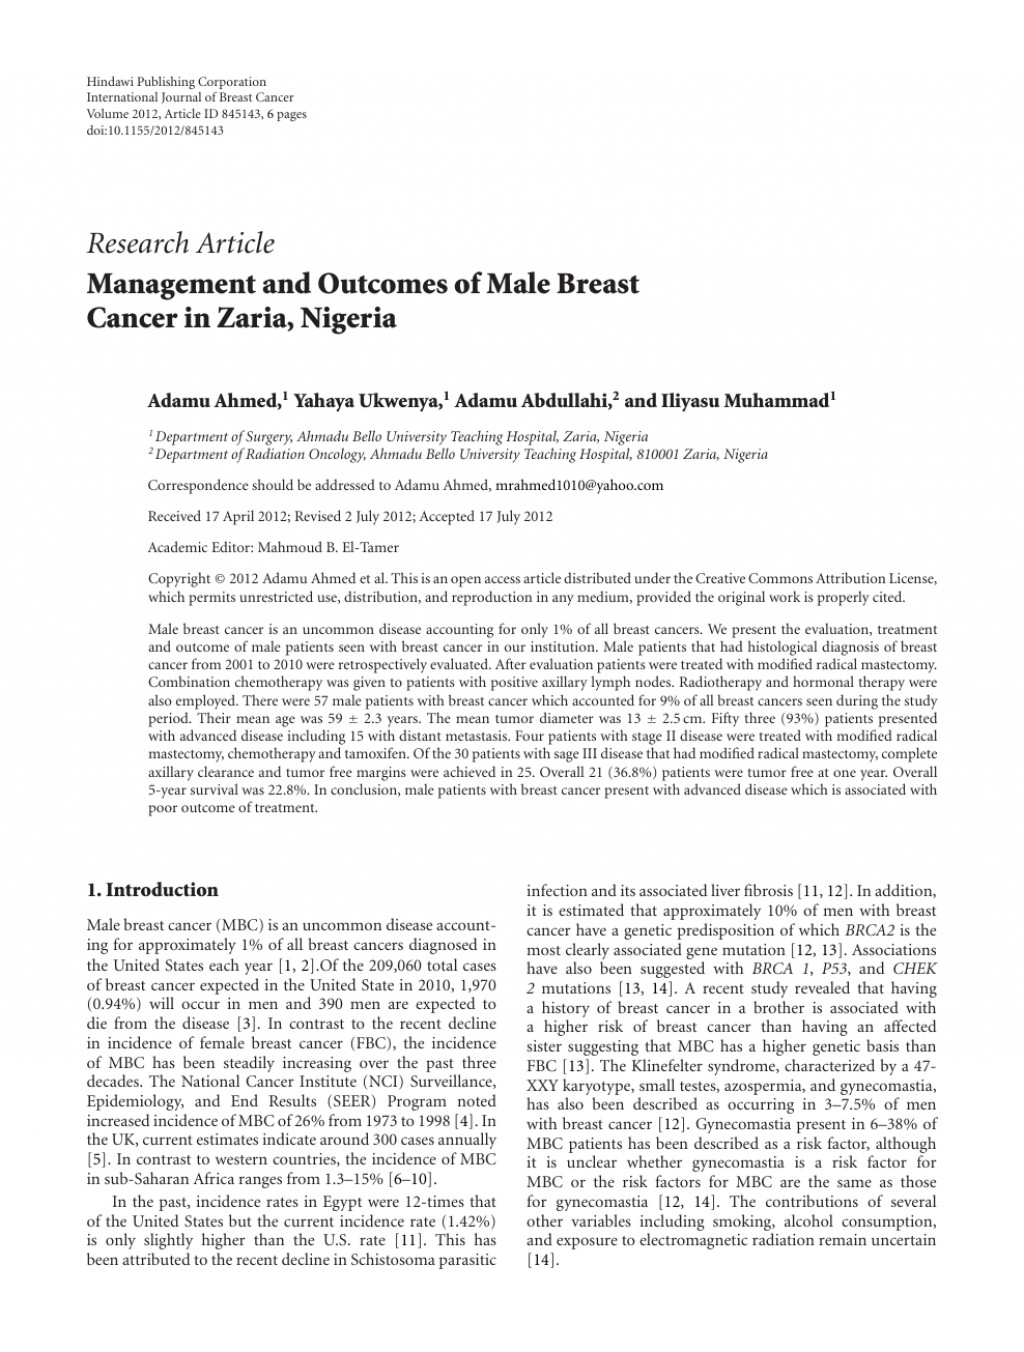 017 Cancer Research Paper Topics Marvelous Breast Ideas Ovarian Large